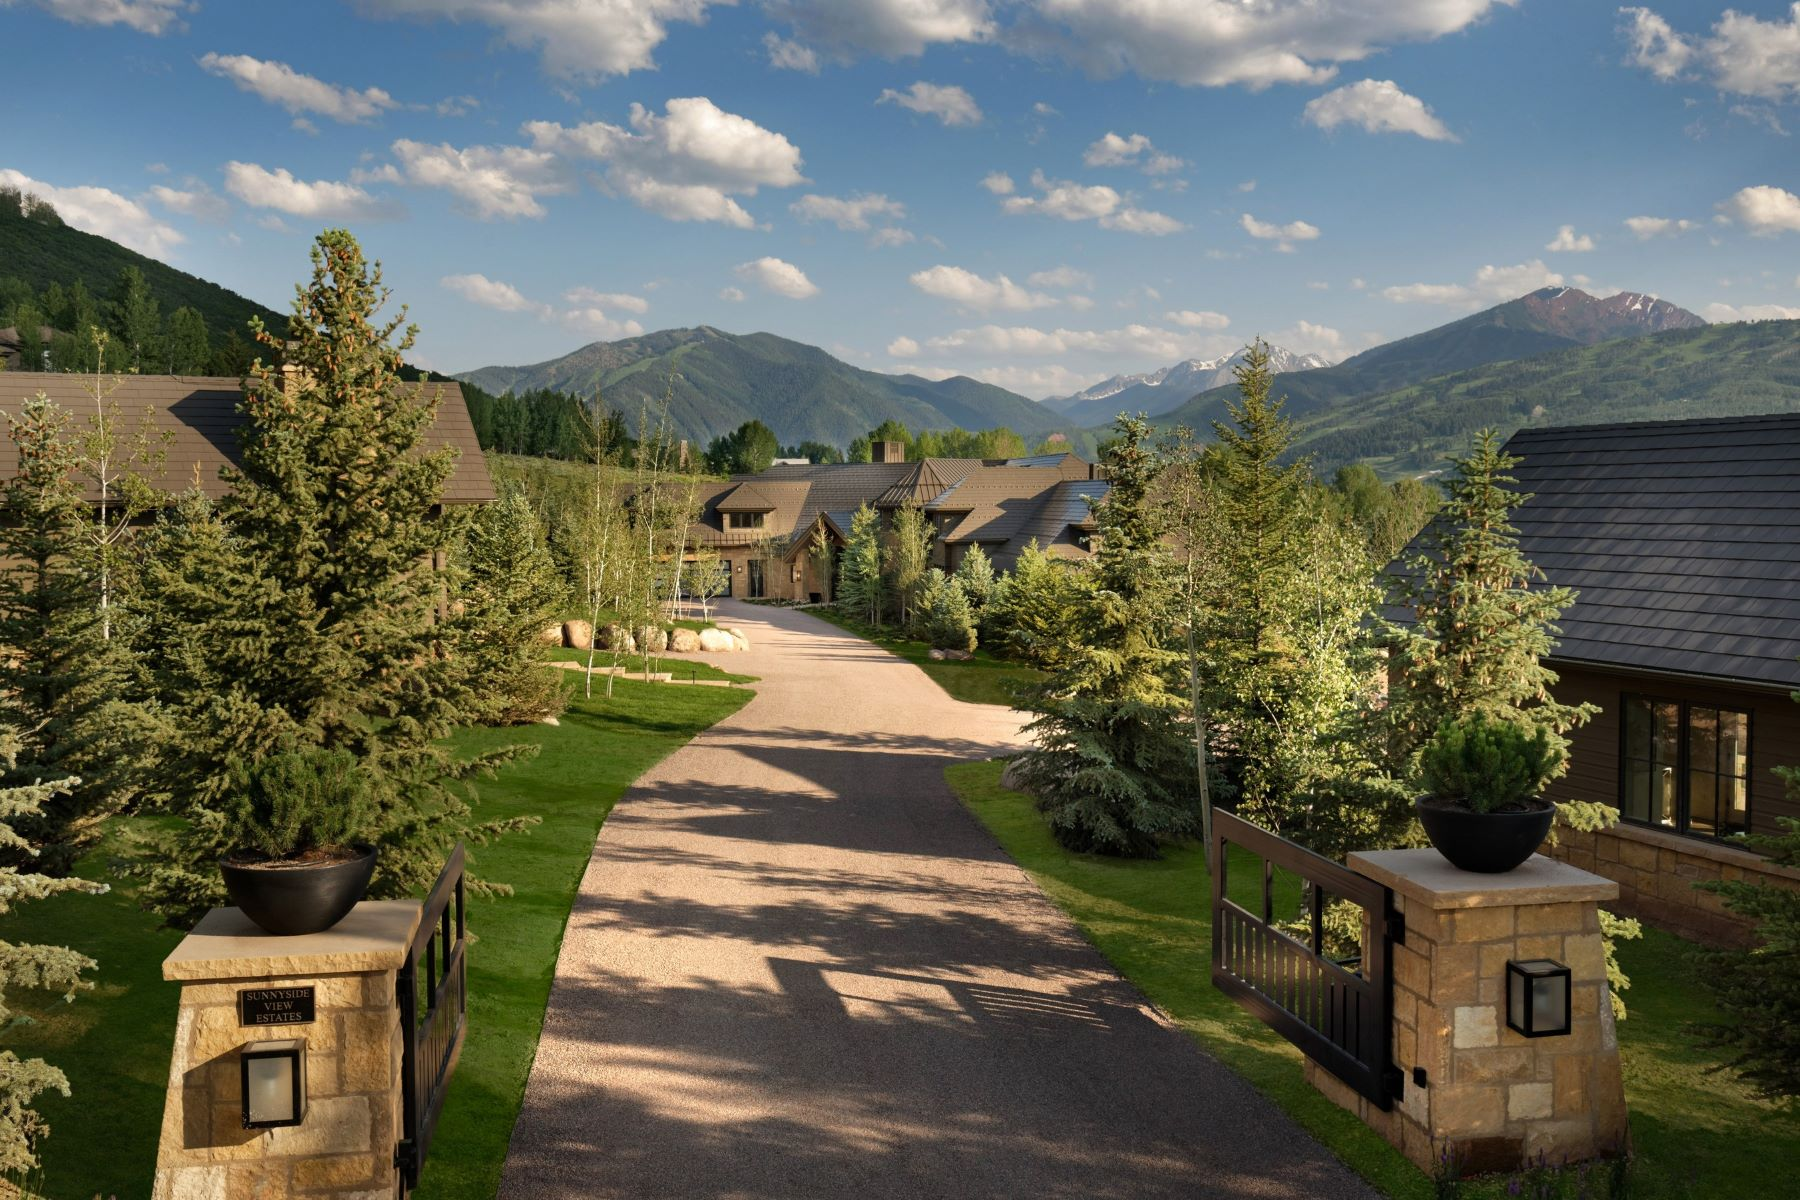 Single Family Homes for Sale at Sunnyside View Estate 61 Sunnyside Way Aspen, Colorado 81611 United States